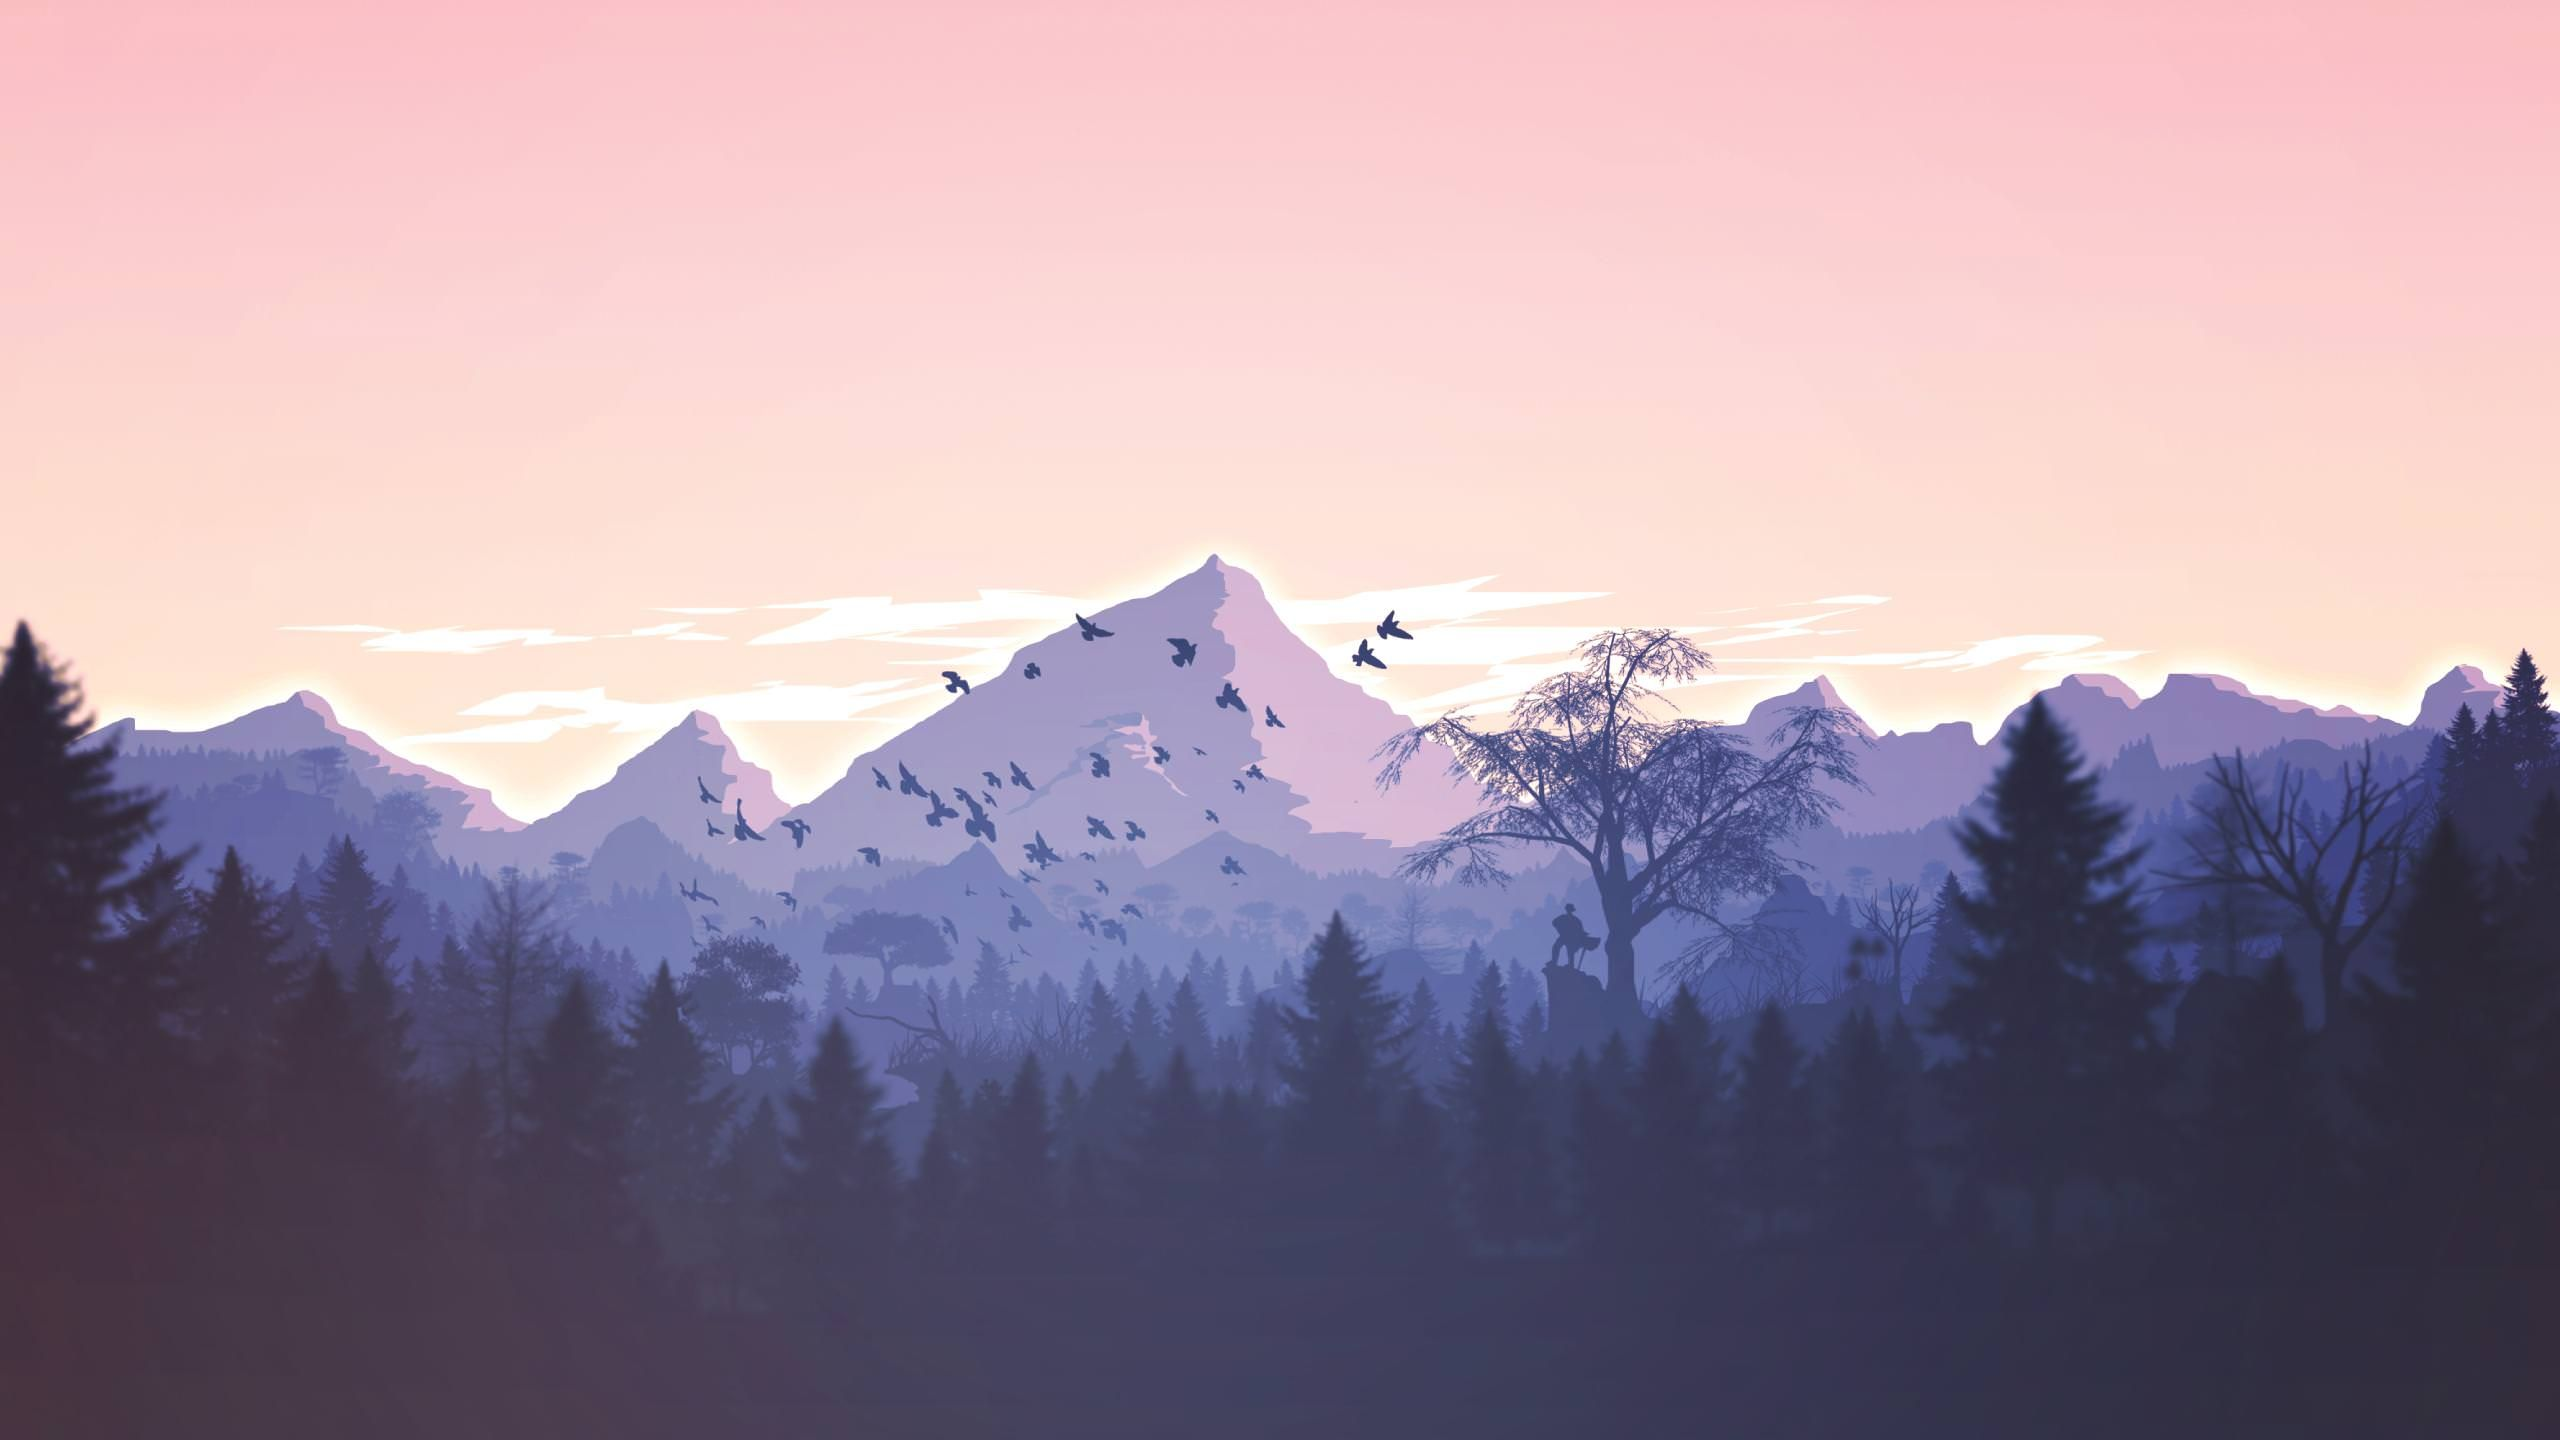 Minimalist Scenery 2560x1440 Minimal Desktop Wallpaper